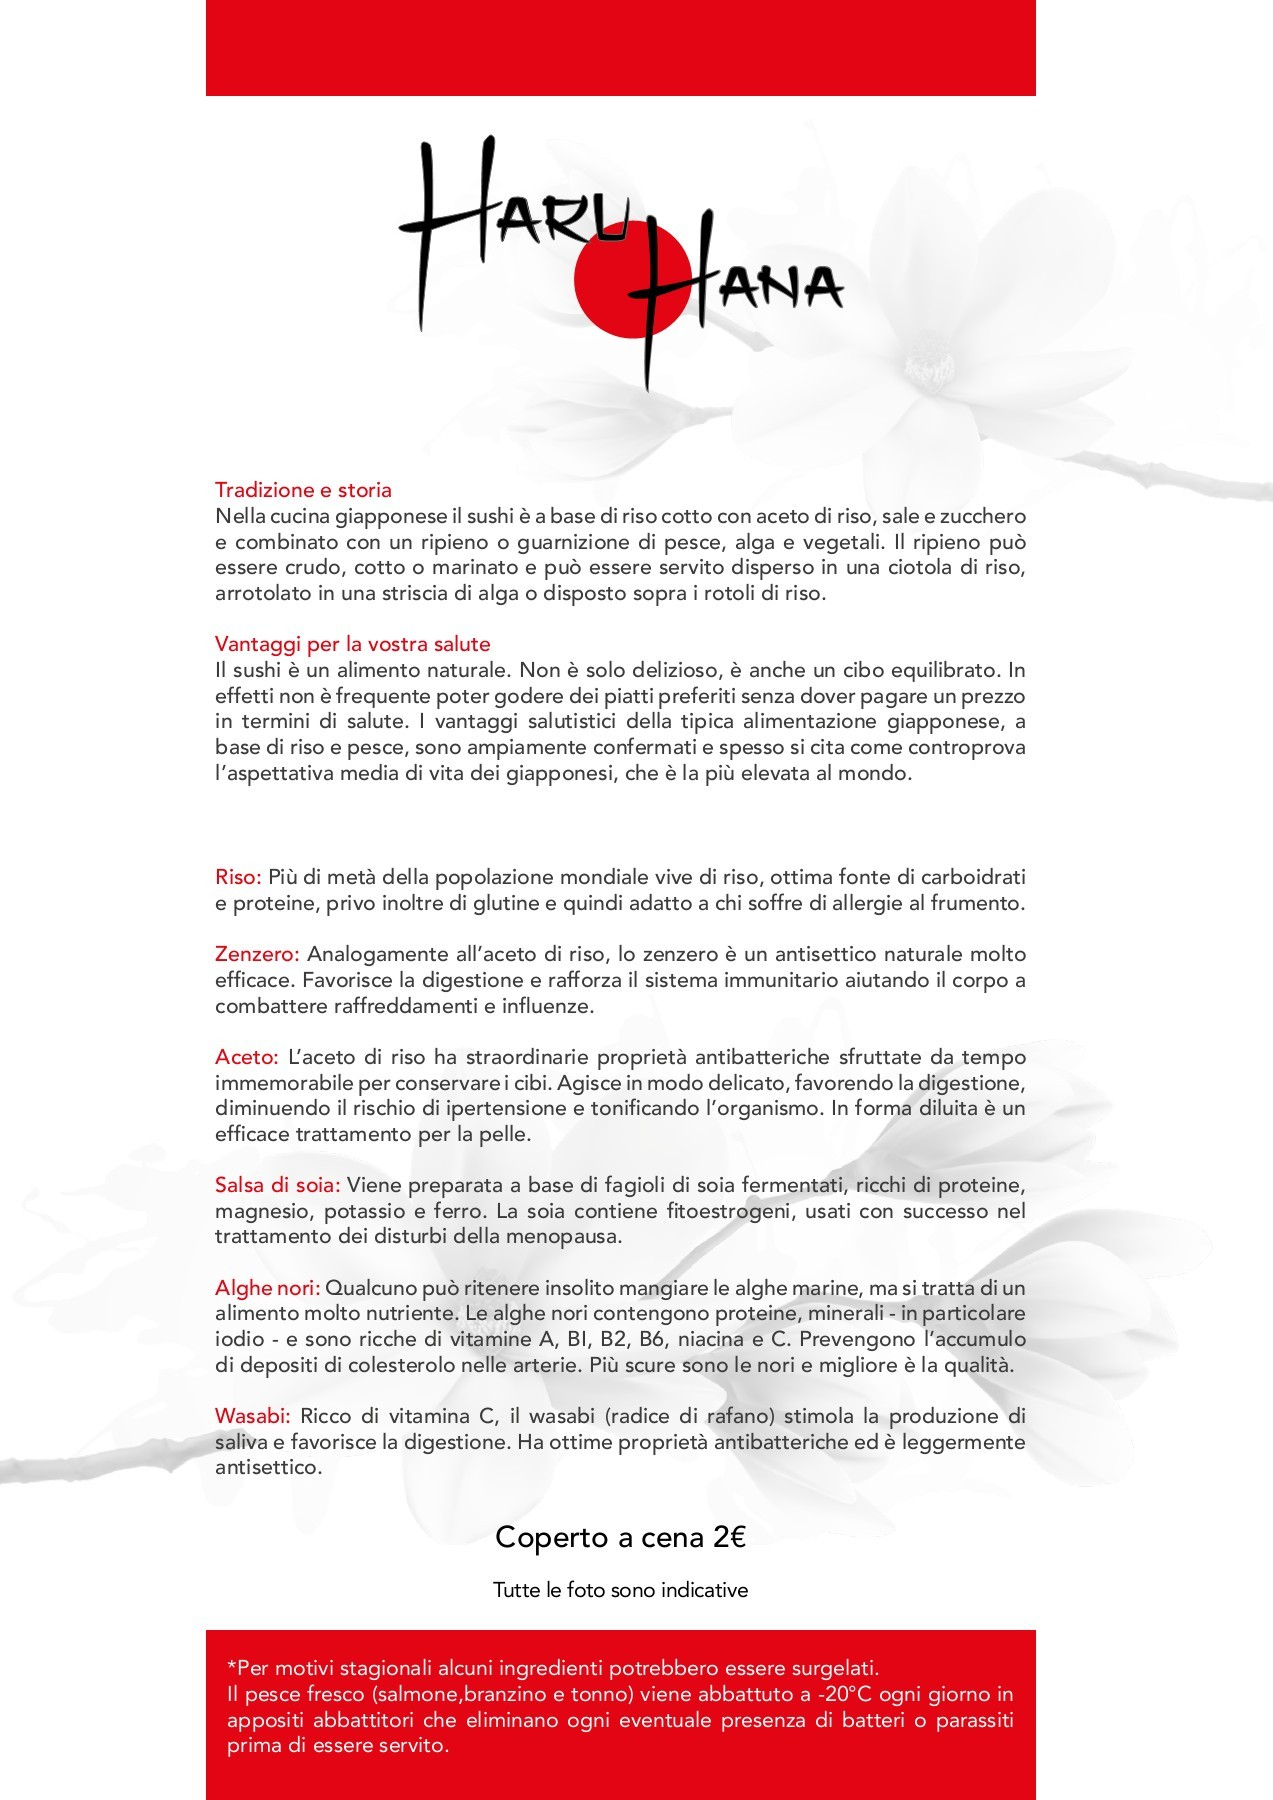 Cucina Giapponese Pesce Cotto Menu Alla Carta 2 Pages 1 22 Text Version Fliphtml5